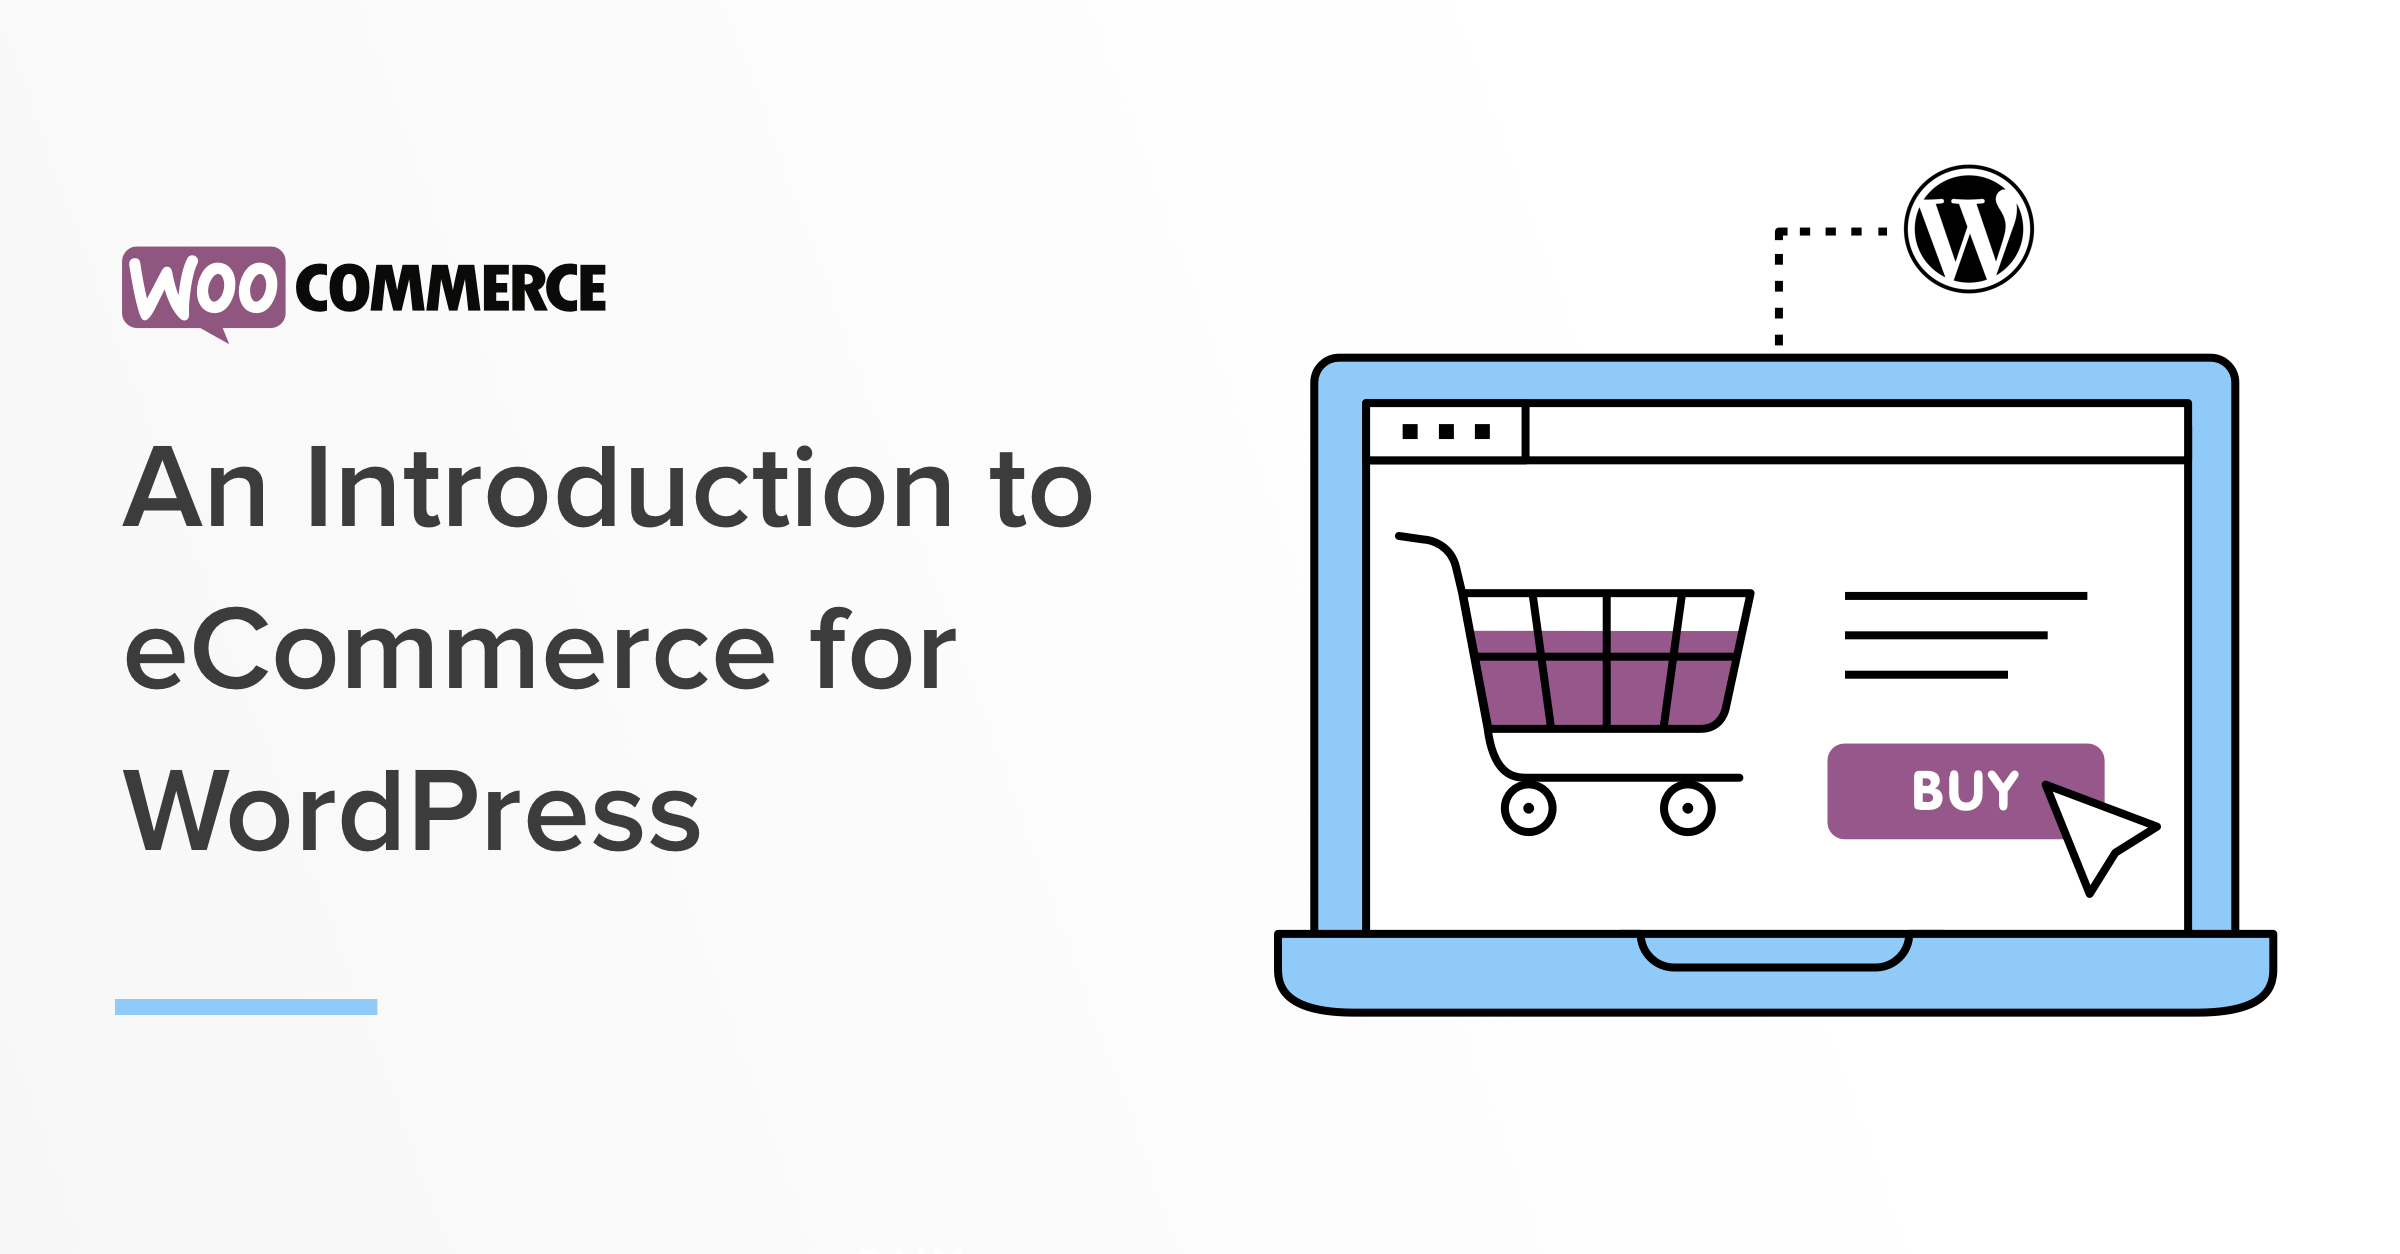 woocommerce.com - An Introduction to eCommerce for WordPress